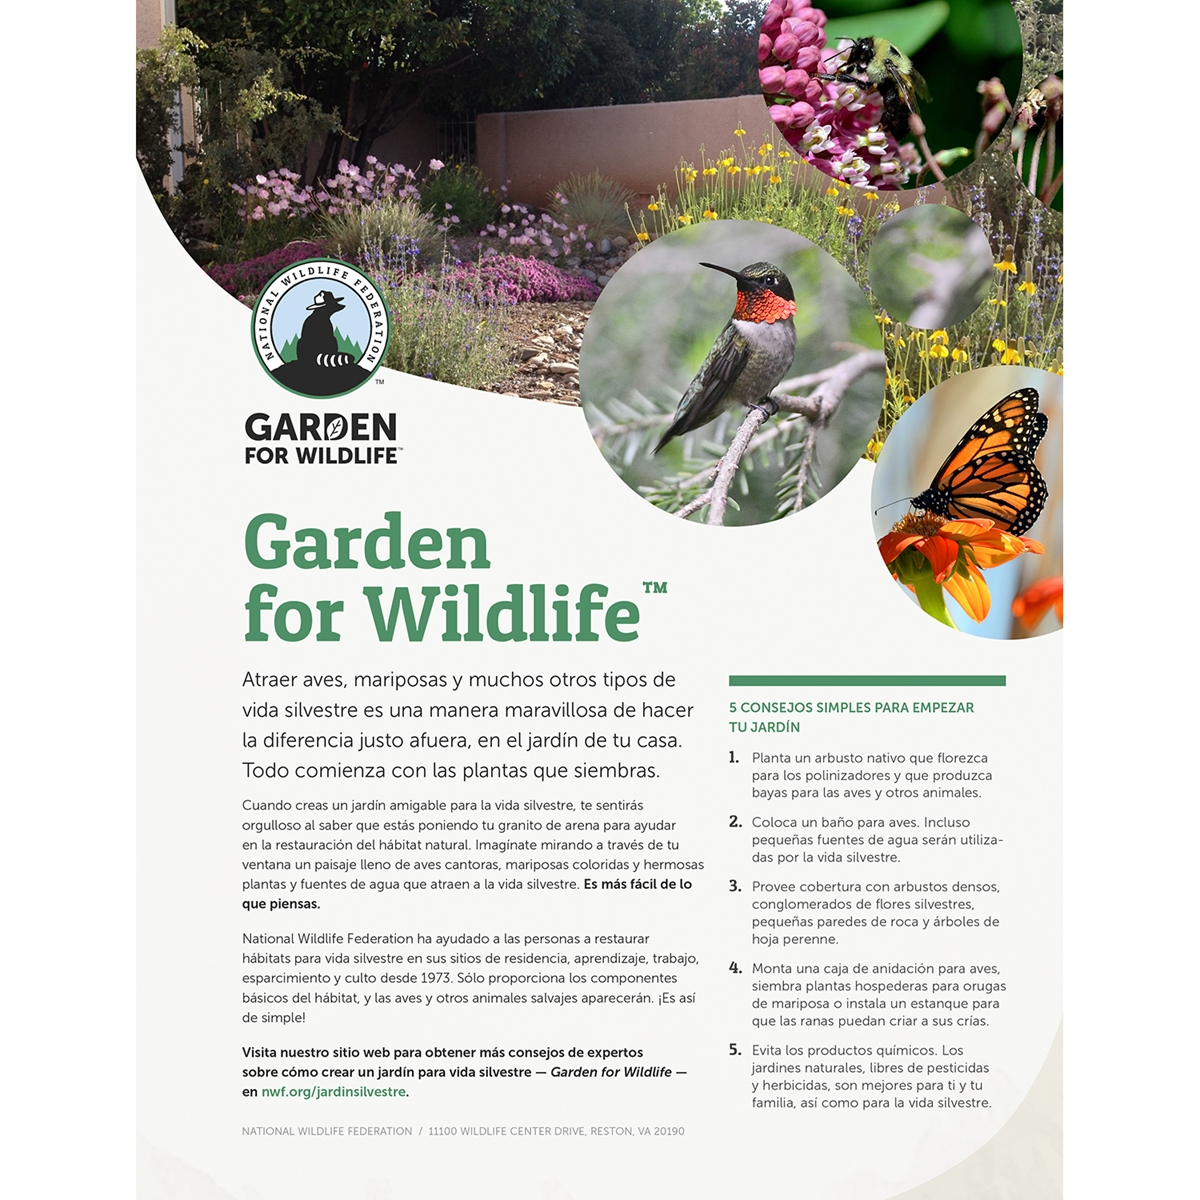 Certified Wildlife Habitat Application - Spanish Language